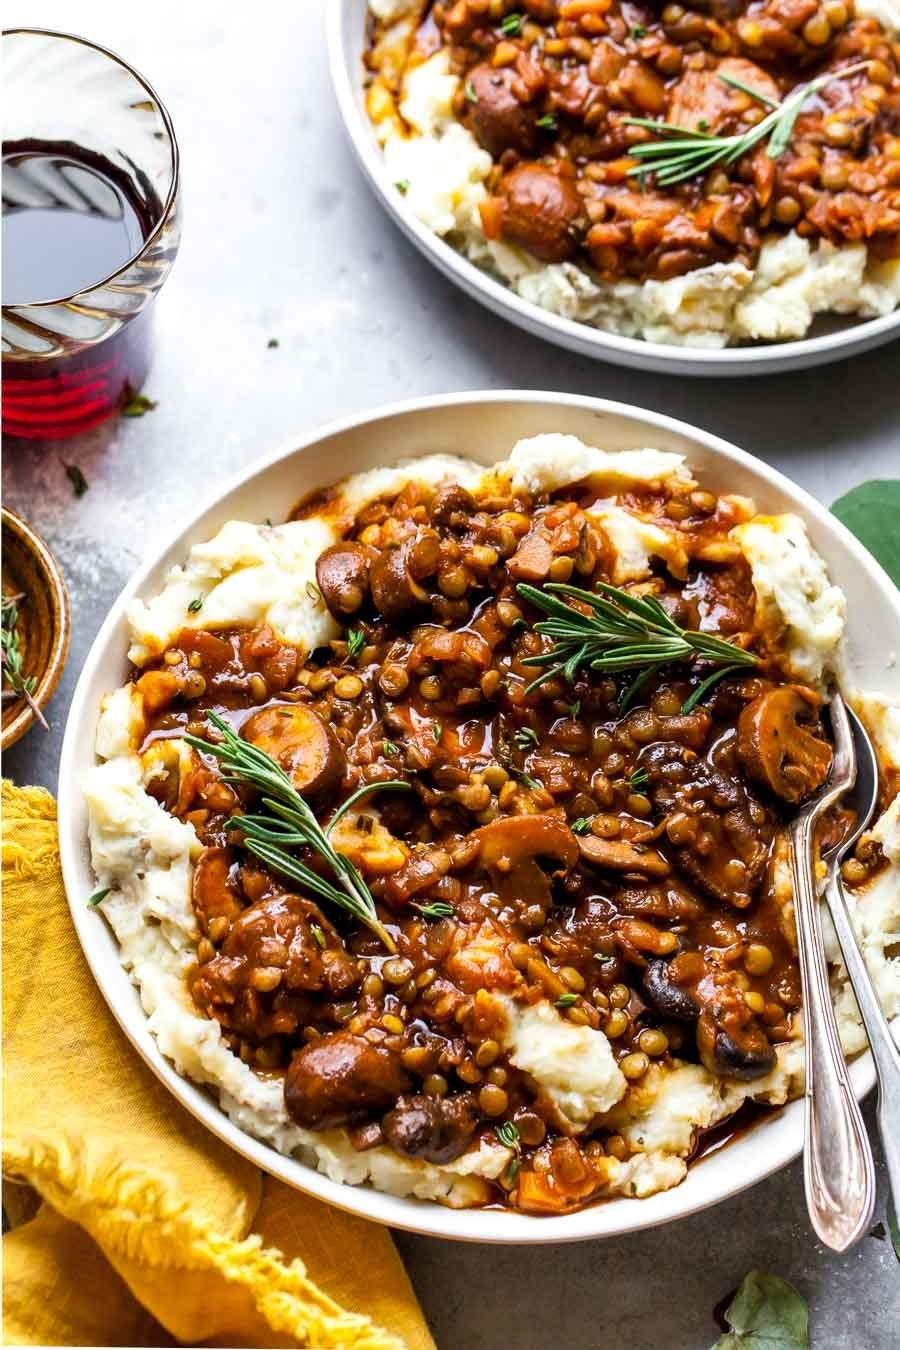 A bowl of mashed potatoes topped with a lentil and mushroom stew, garnished with rosemary.